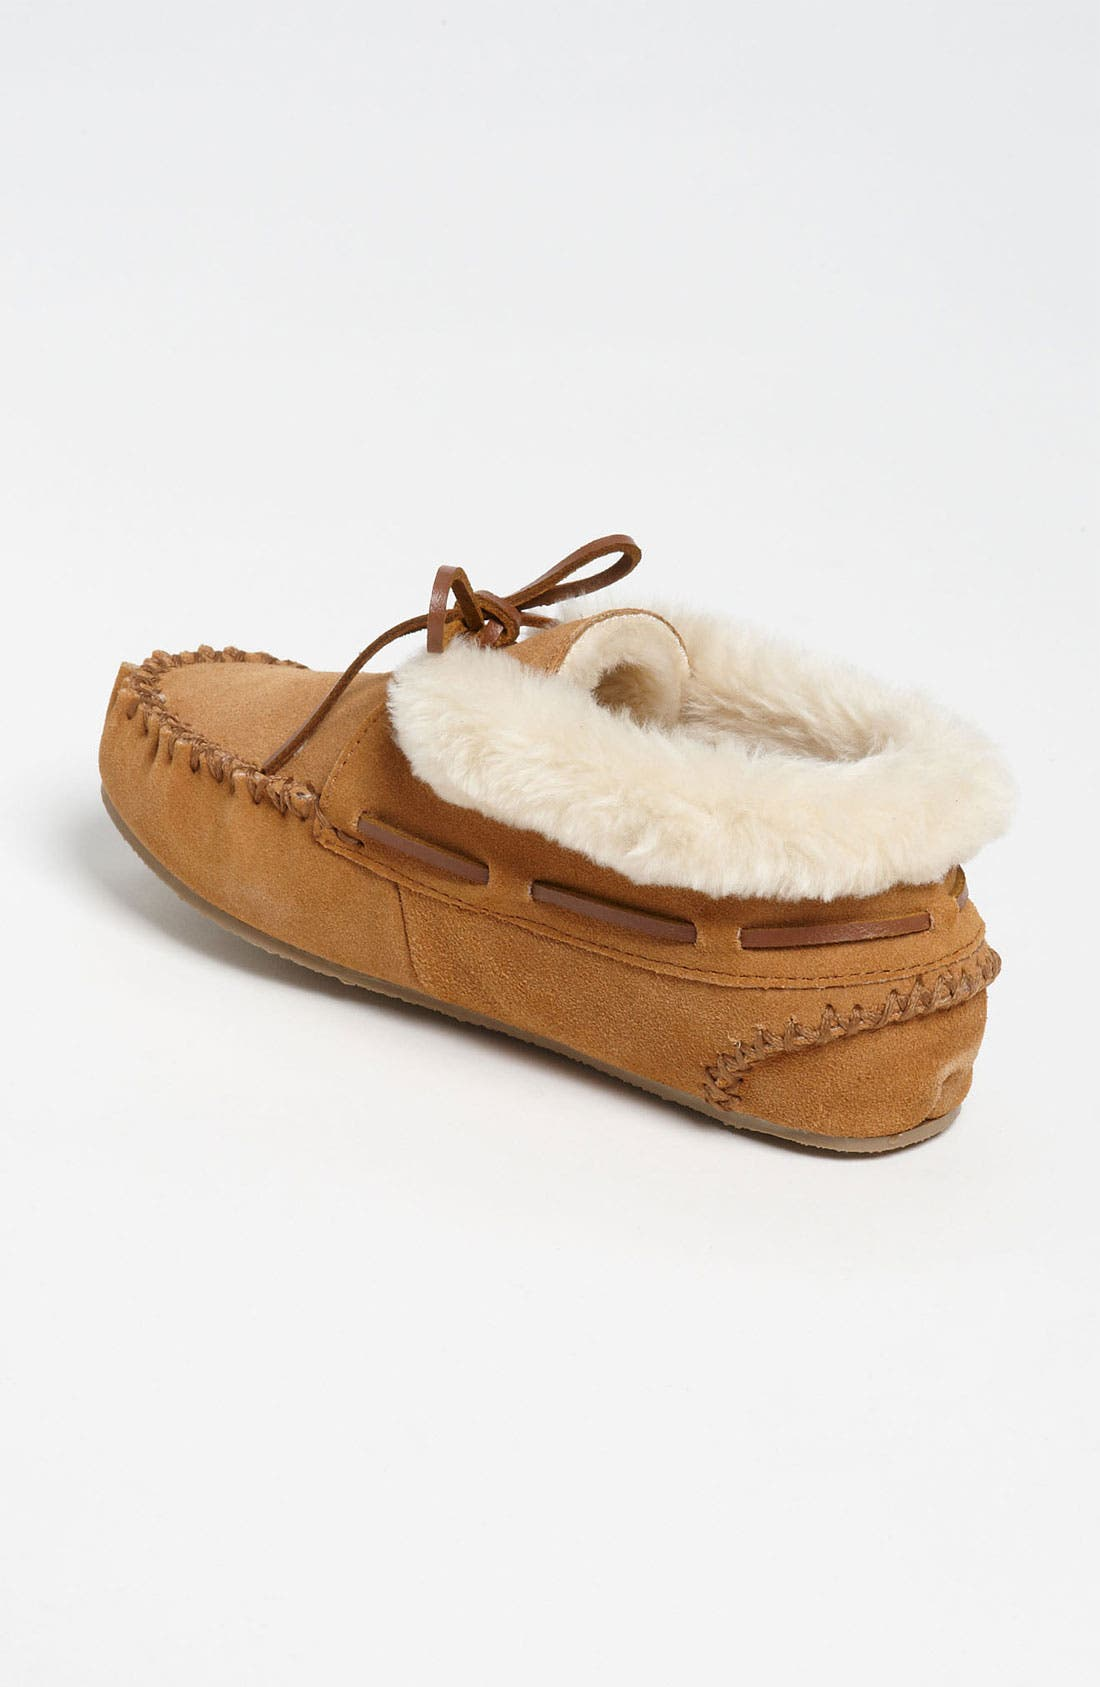 'Chrissy' Slipper Bootie,                             Alternate thumbnail 8, color,                             CINNAMON SUEDE